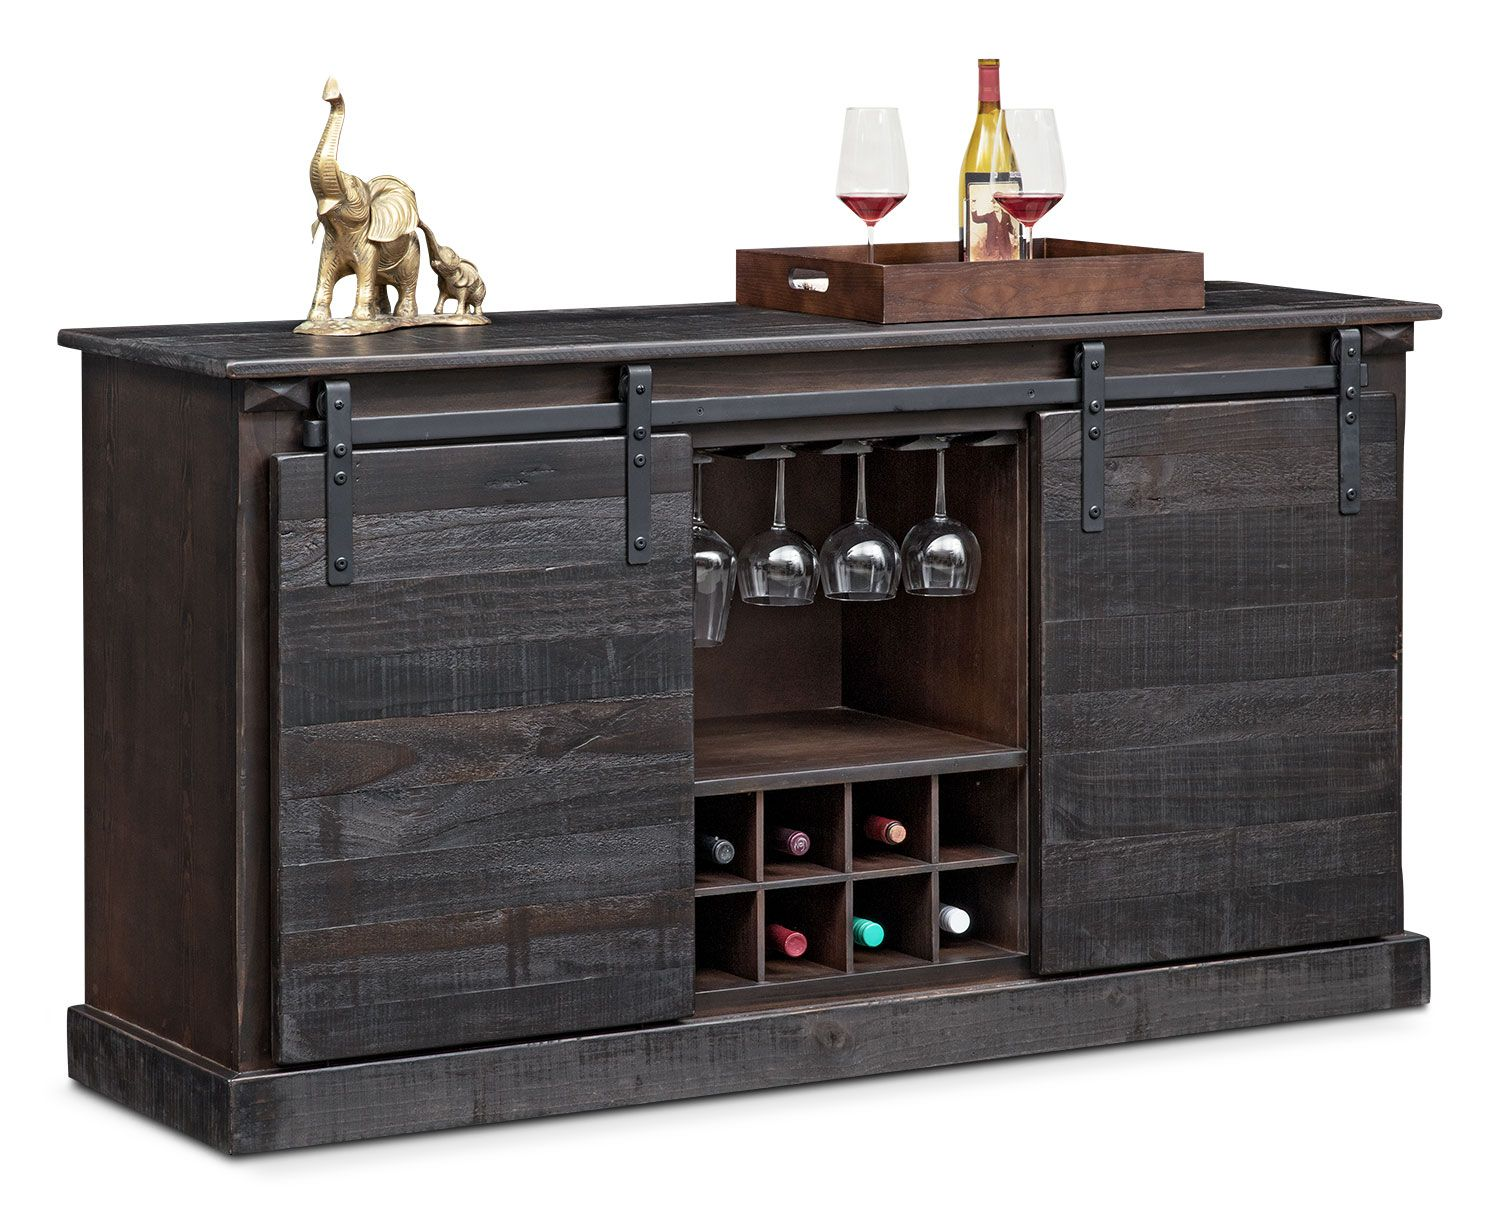 Online Thrift Store Shopping Mall Wine Rack Sideboard Rustic